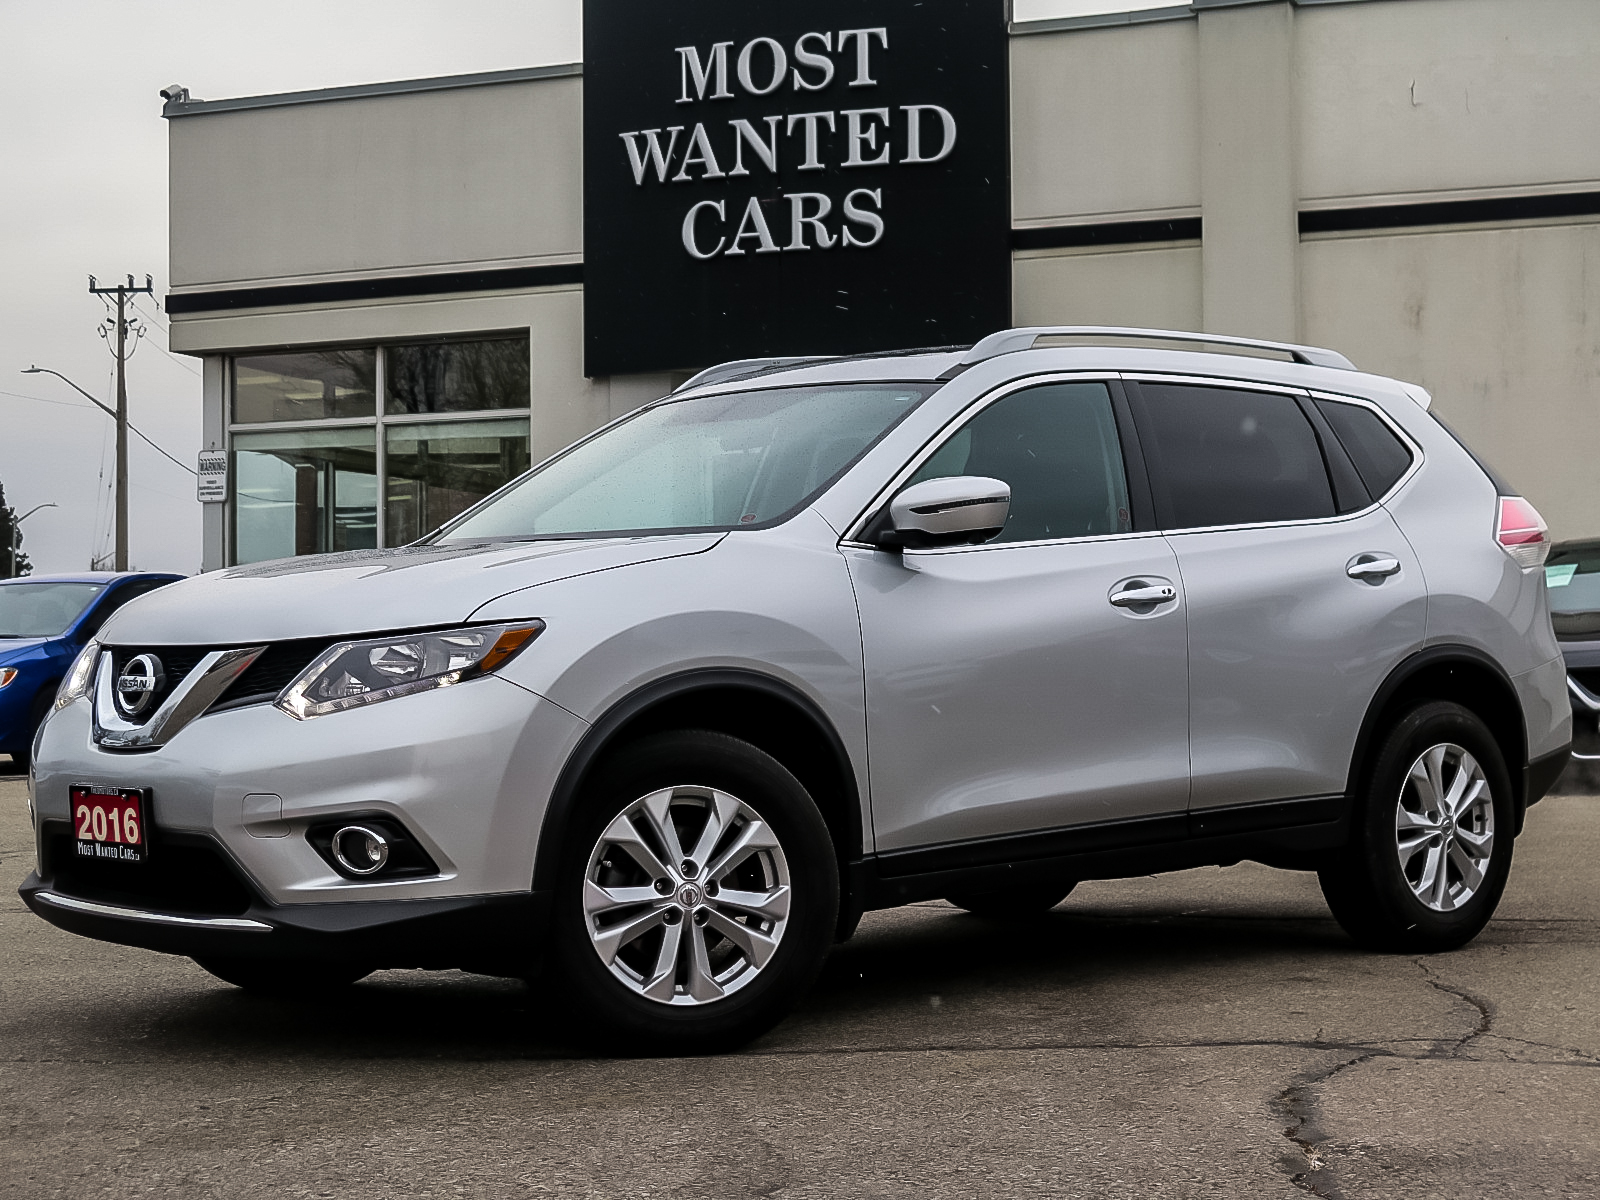 used 2016 Nissan Rogue car, priced at $16,492